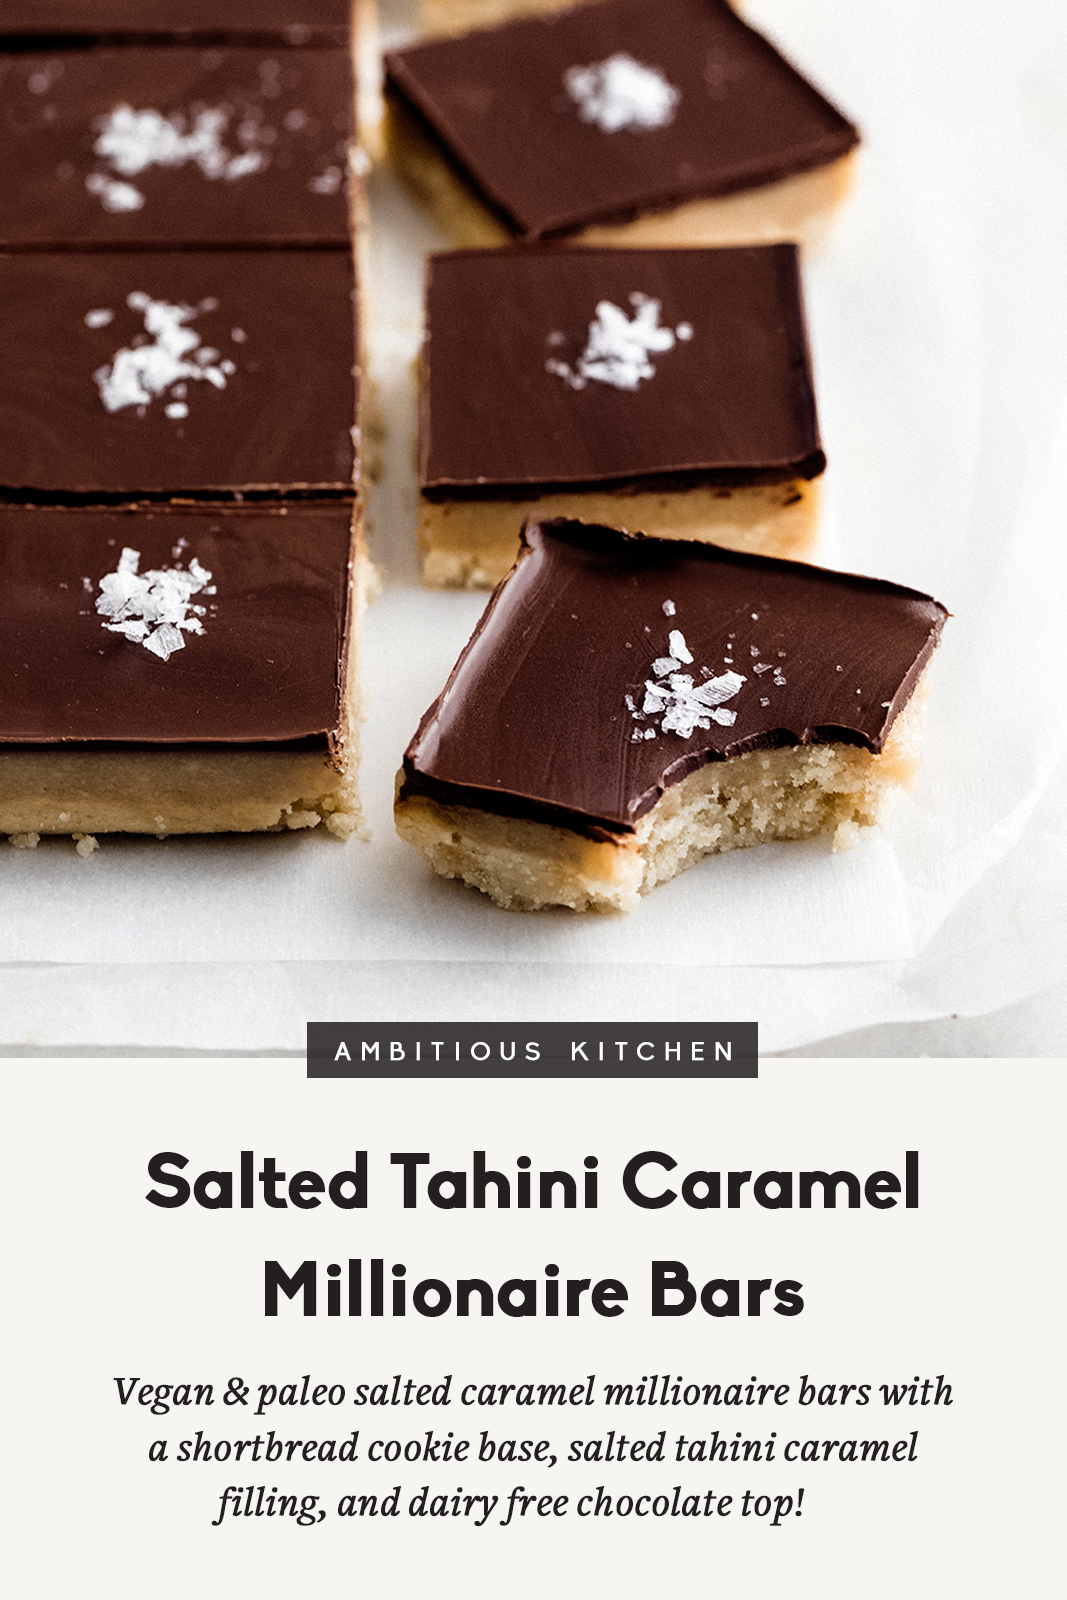 Easy to make salted caramel millionaire bars with a shortbread cookie base, salted tahini caramel filling and topped with dairy free chocolate. Both vegan, gluten free and paleo! This recipe is in partnership with Enjoy Life.